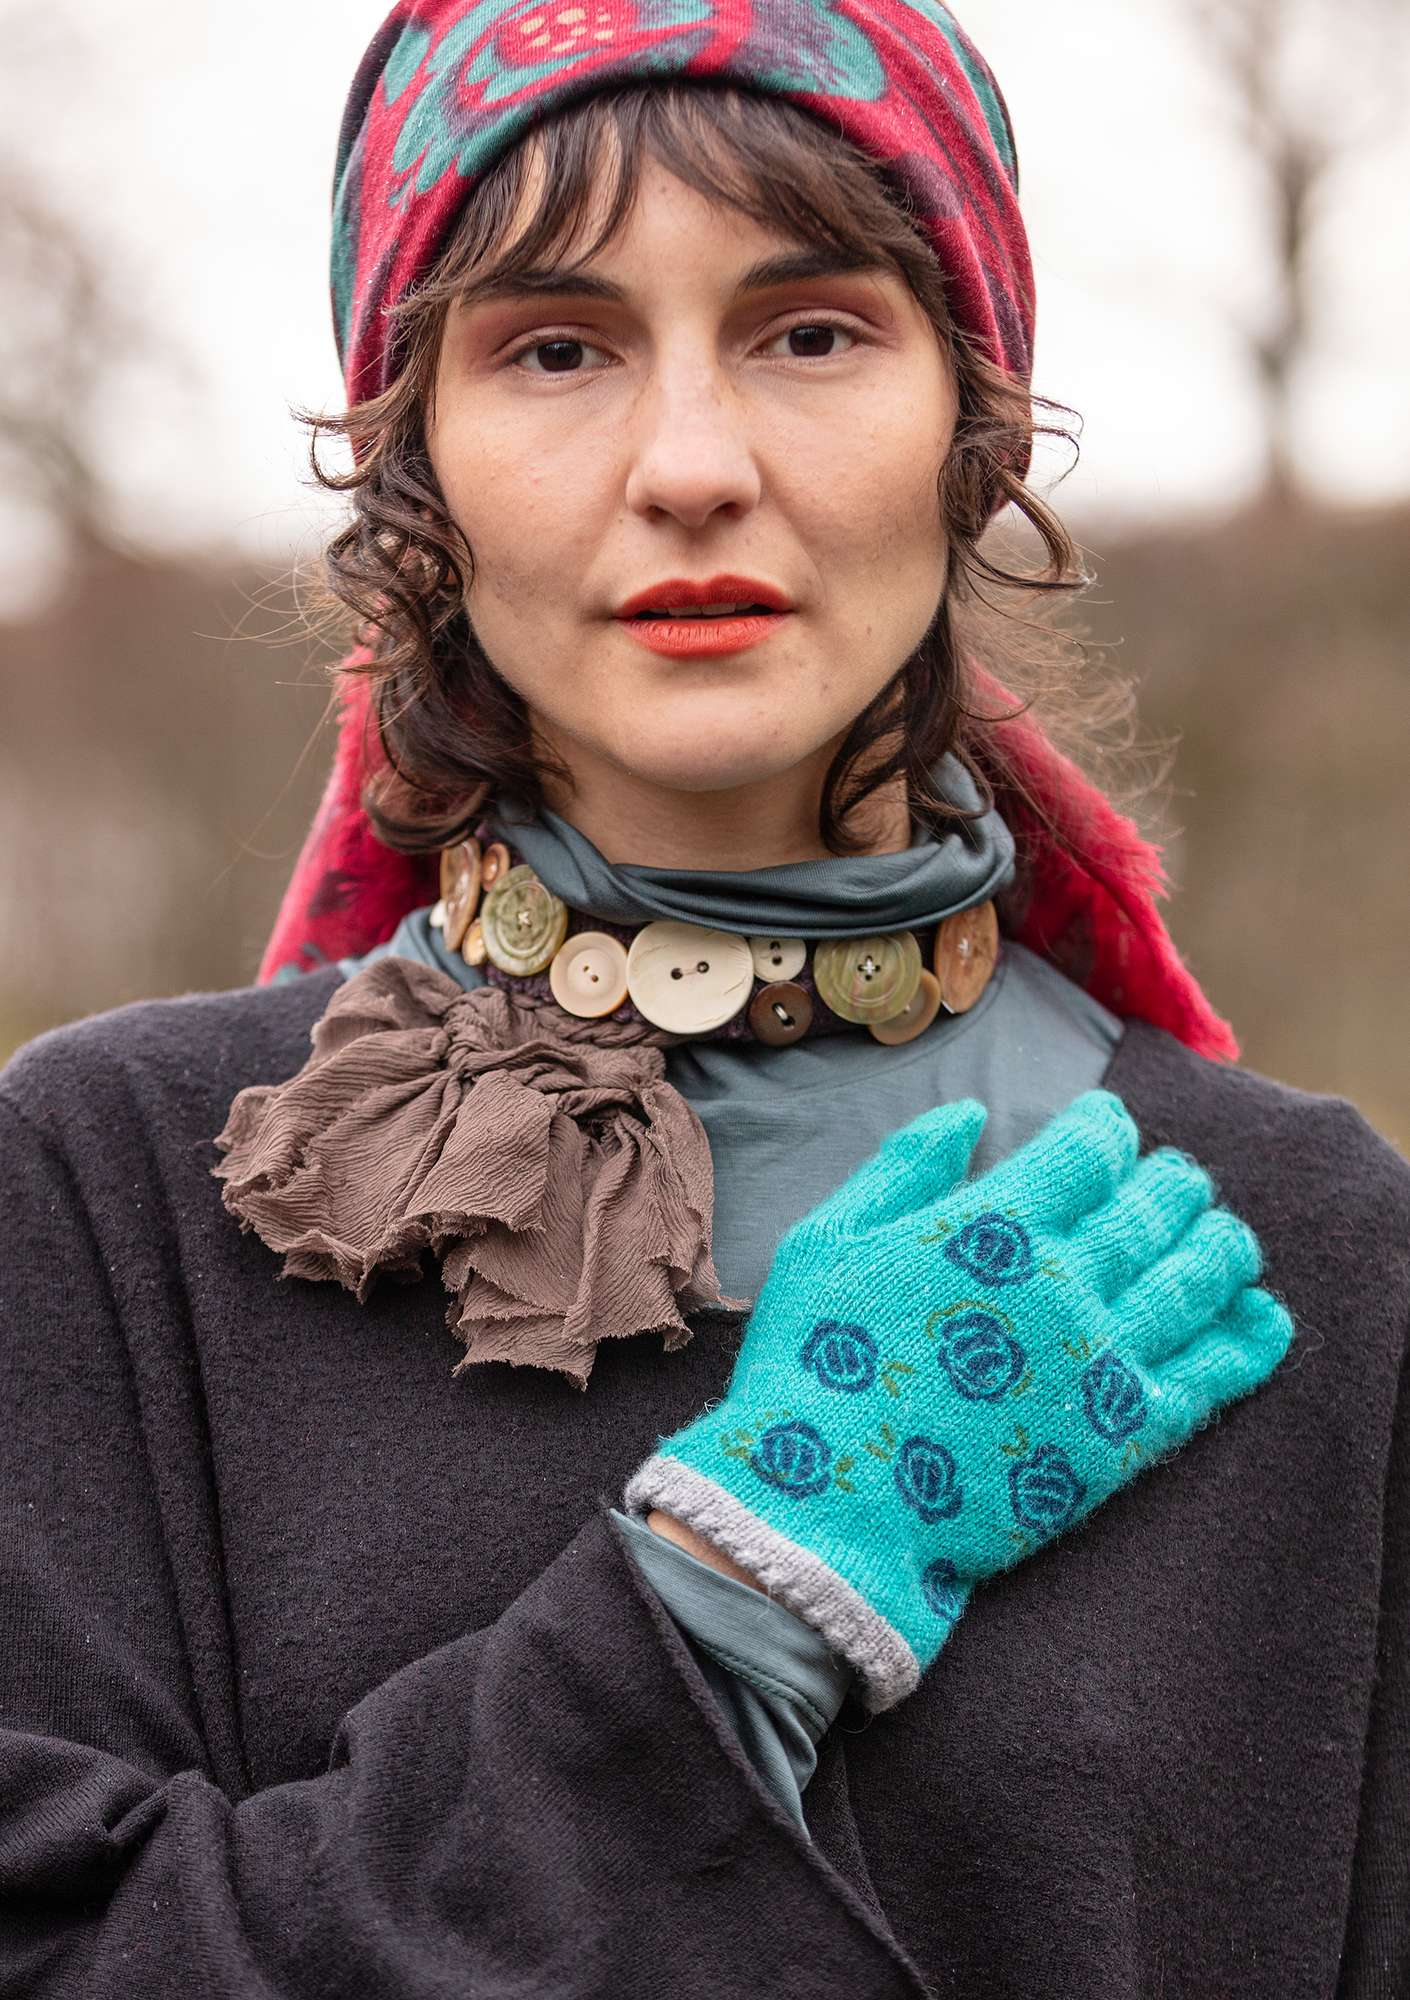 Knitted Linros gloves aqua green/patterned